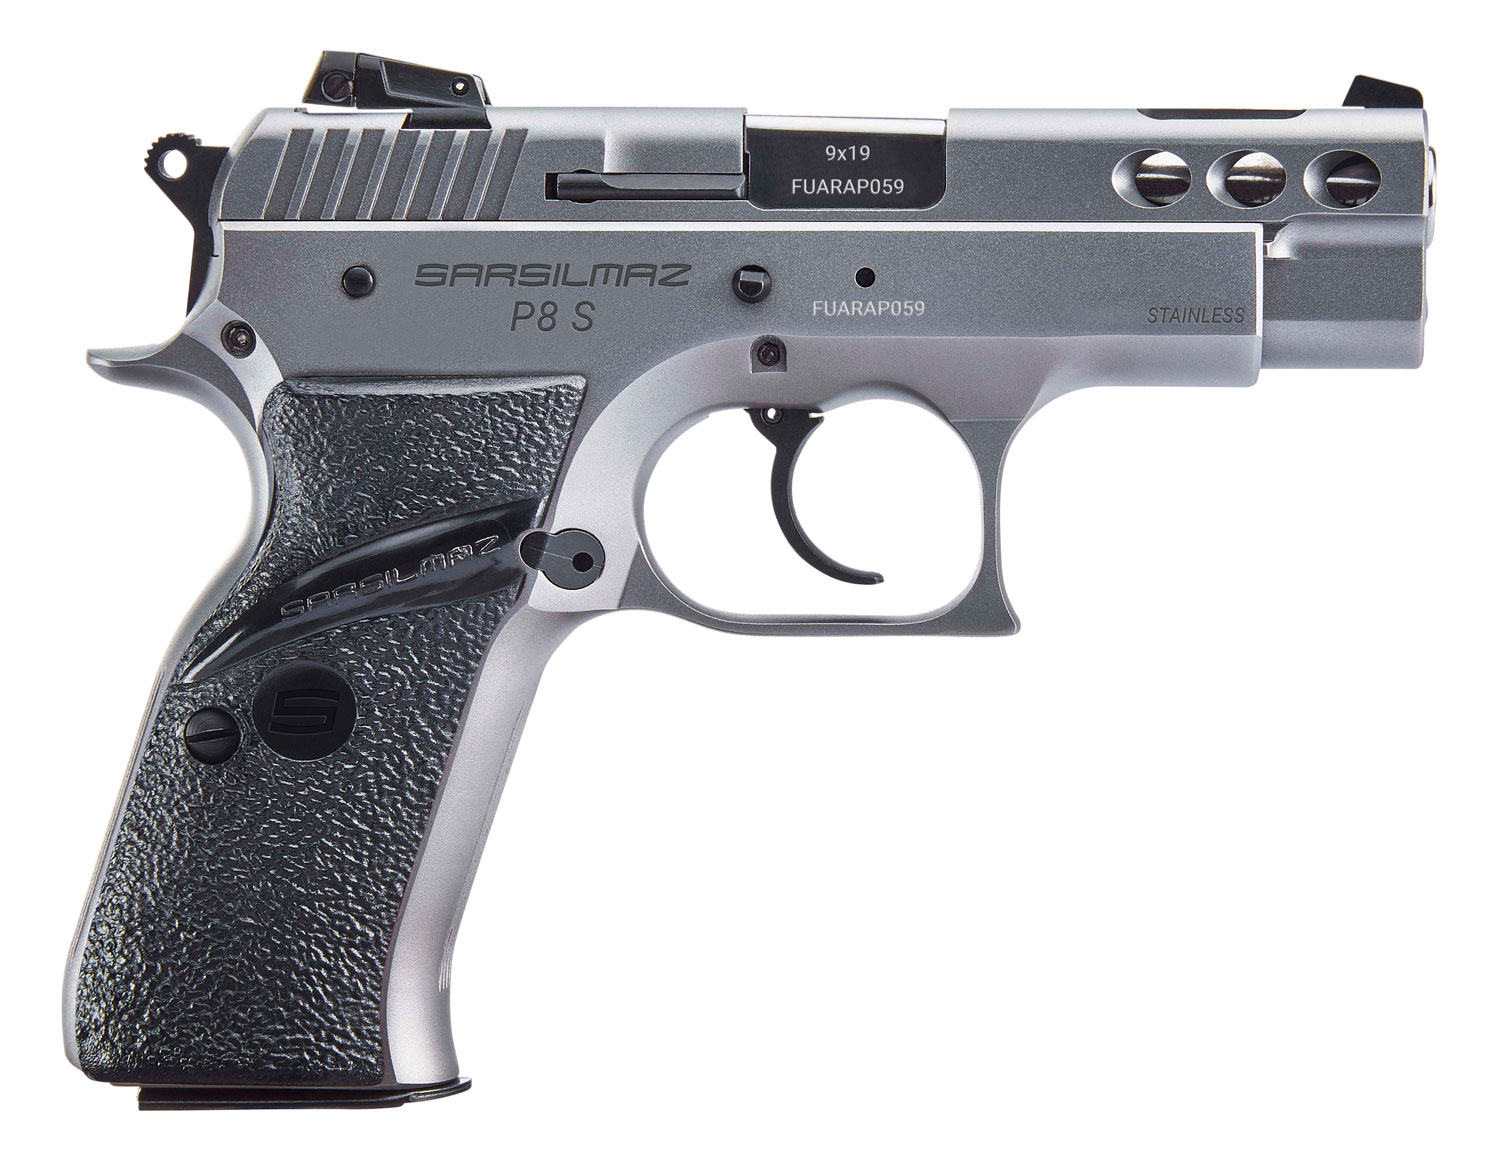 Sar USA P8SST P8S Compact 9mm Luger 3.80